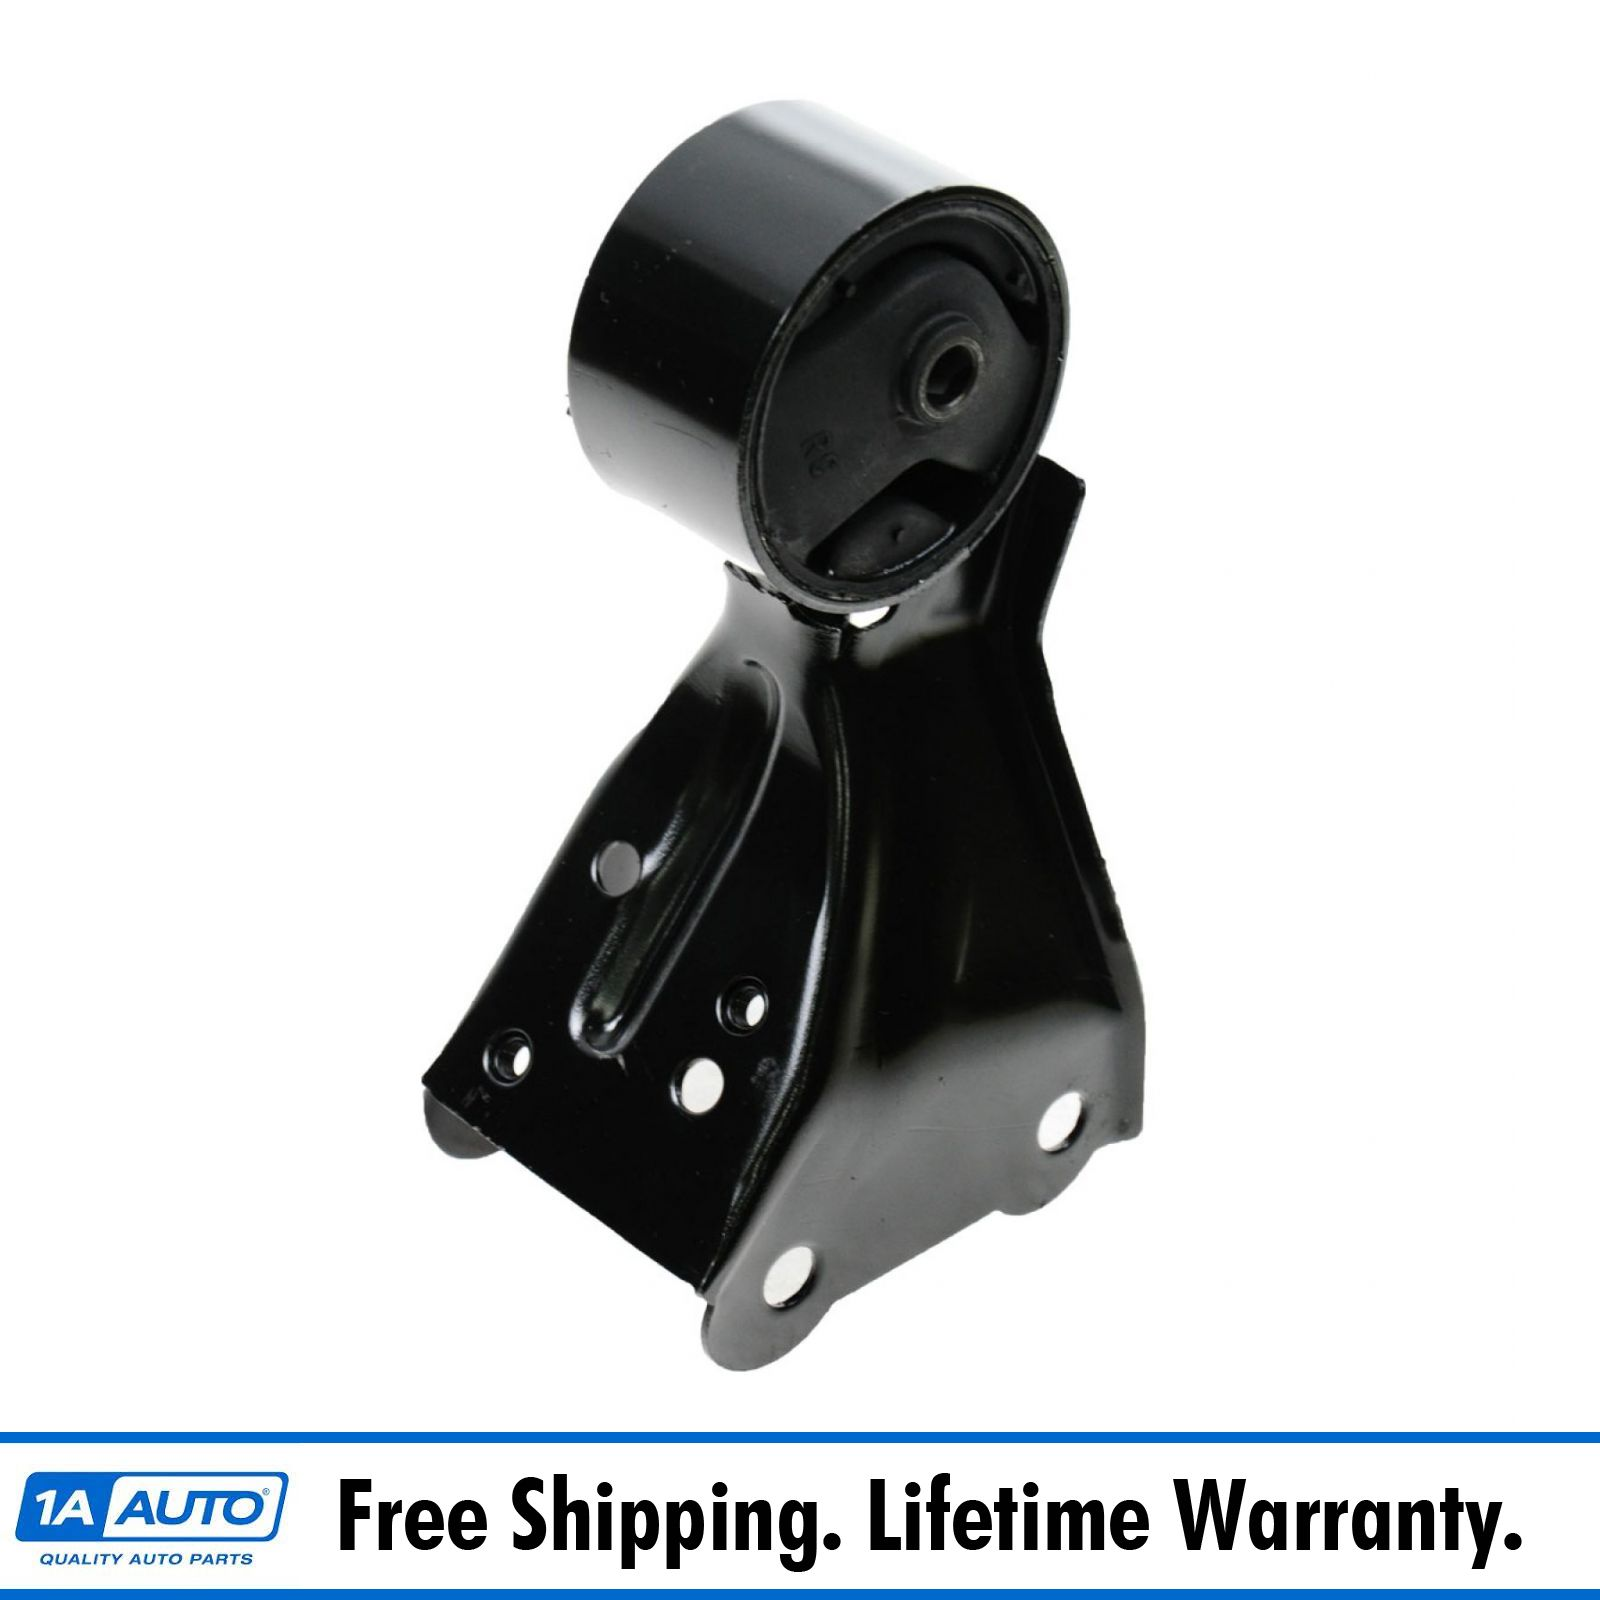 New Engine Motor Mount For 93-98 Nissan Quest 3.0L Set Of 2 2857 2855 M462